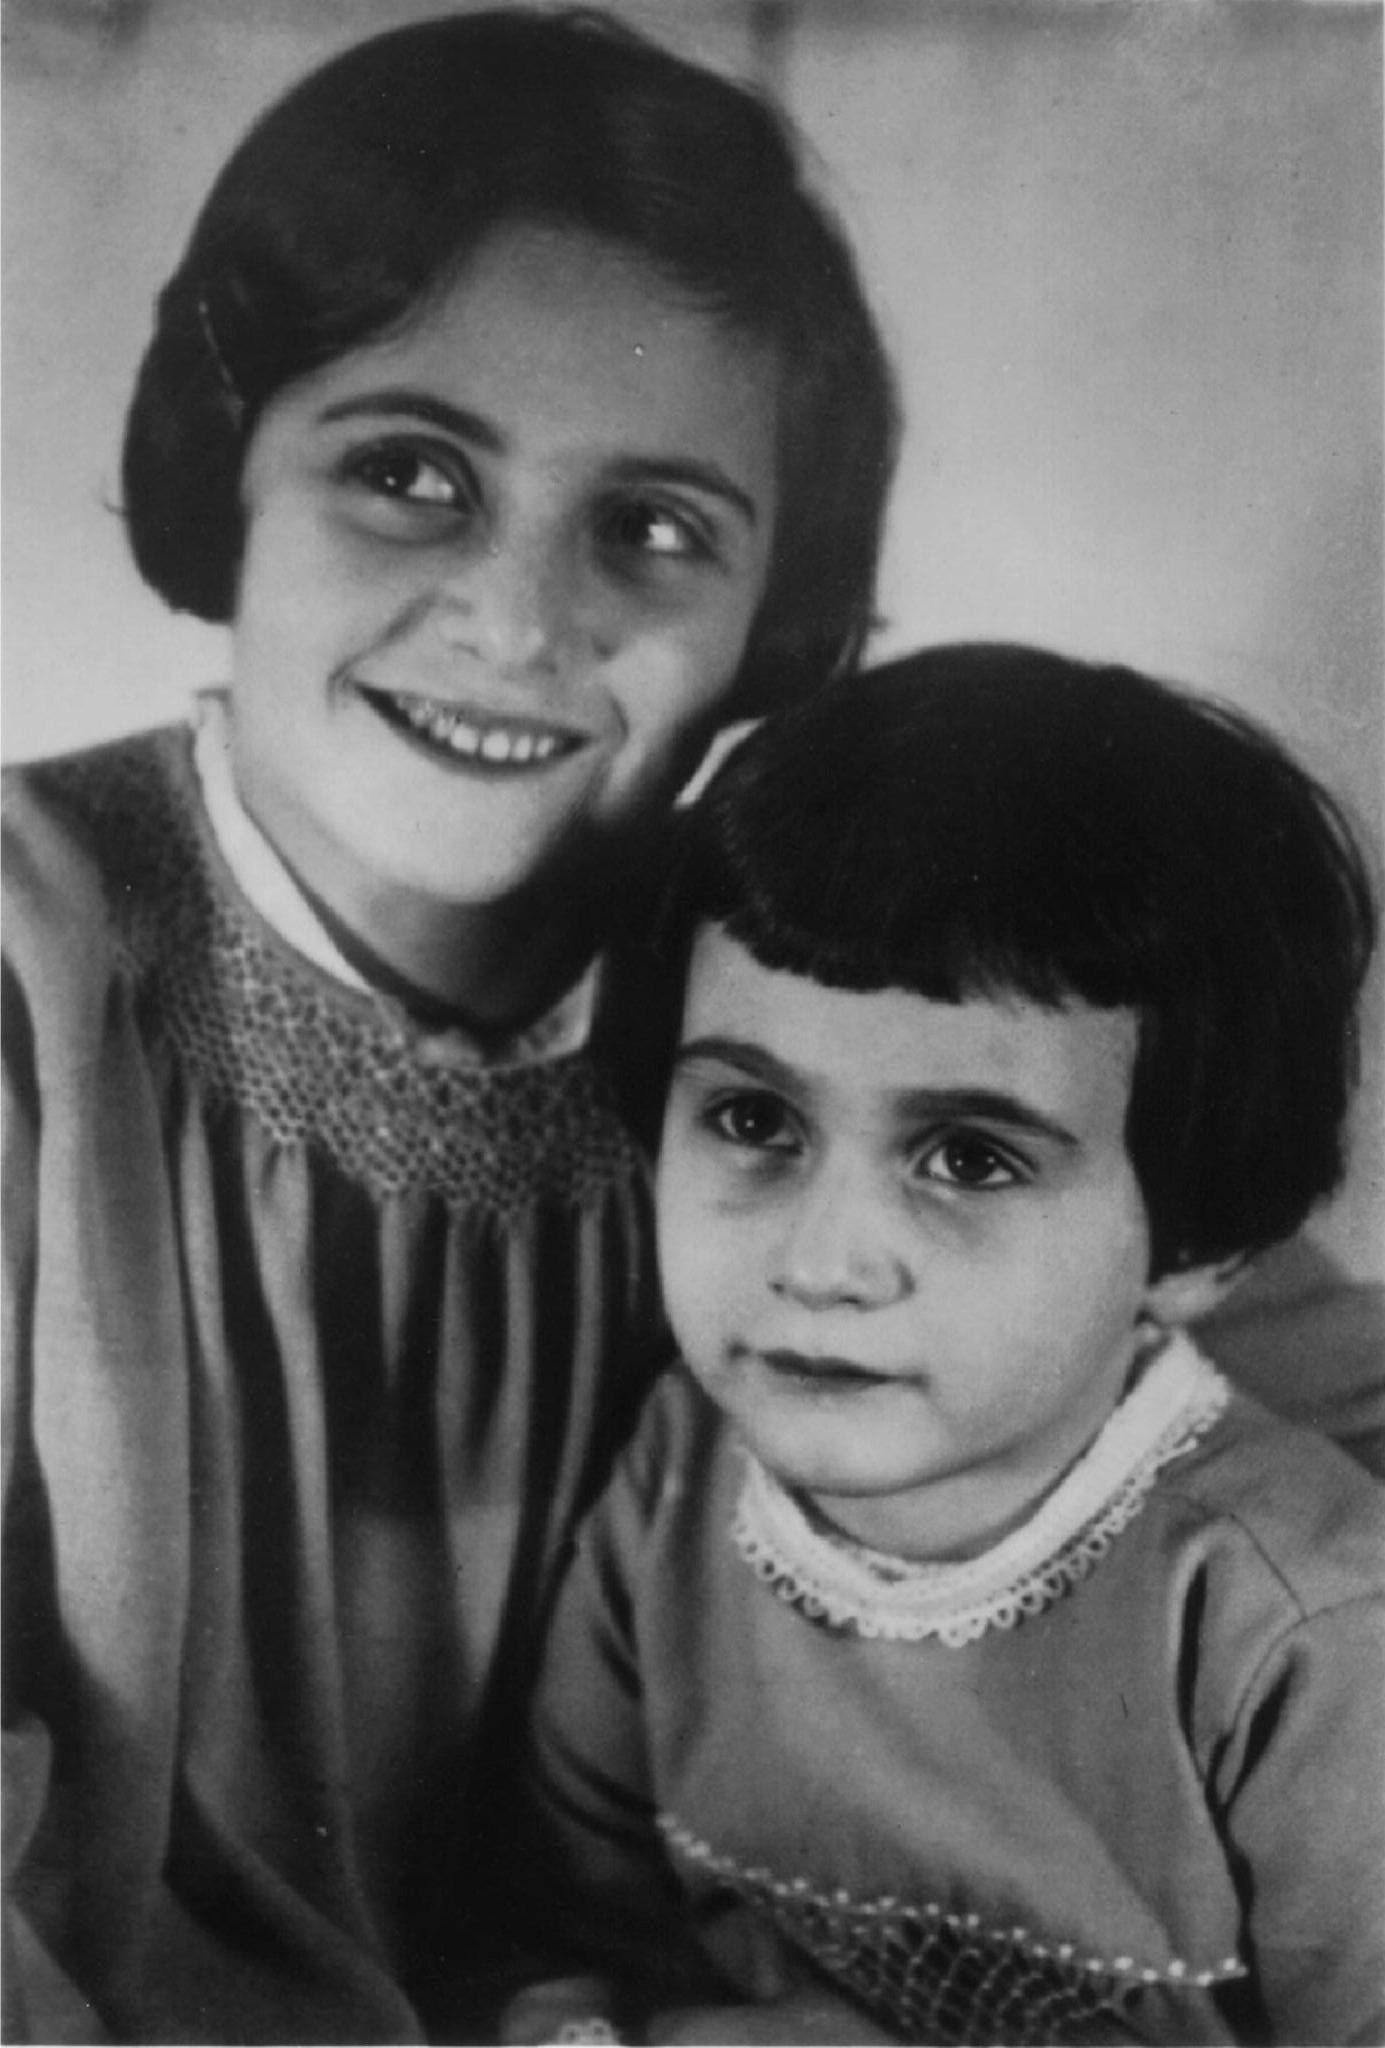 Sisters Margot Frank and Anne Frank, who both died in the